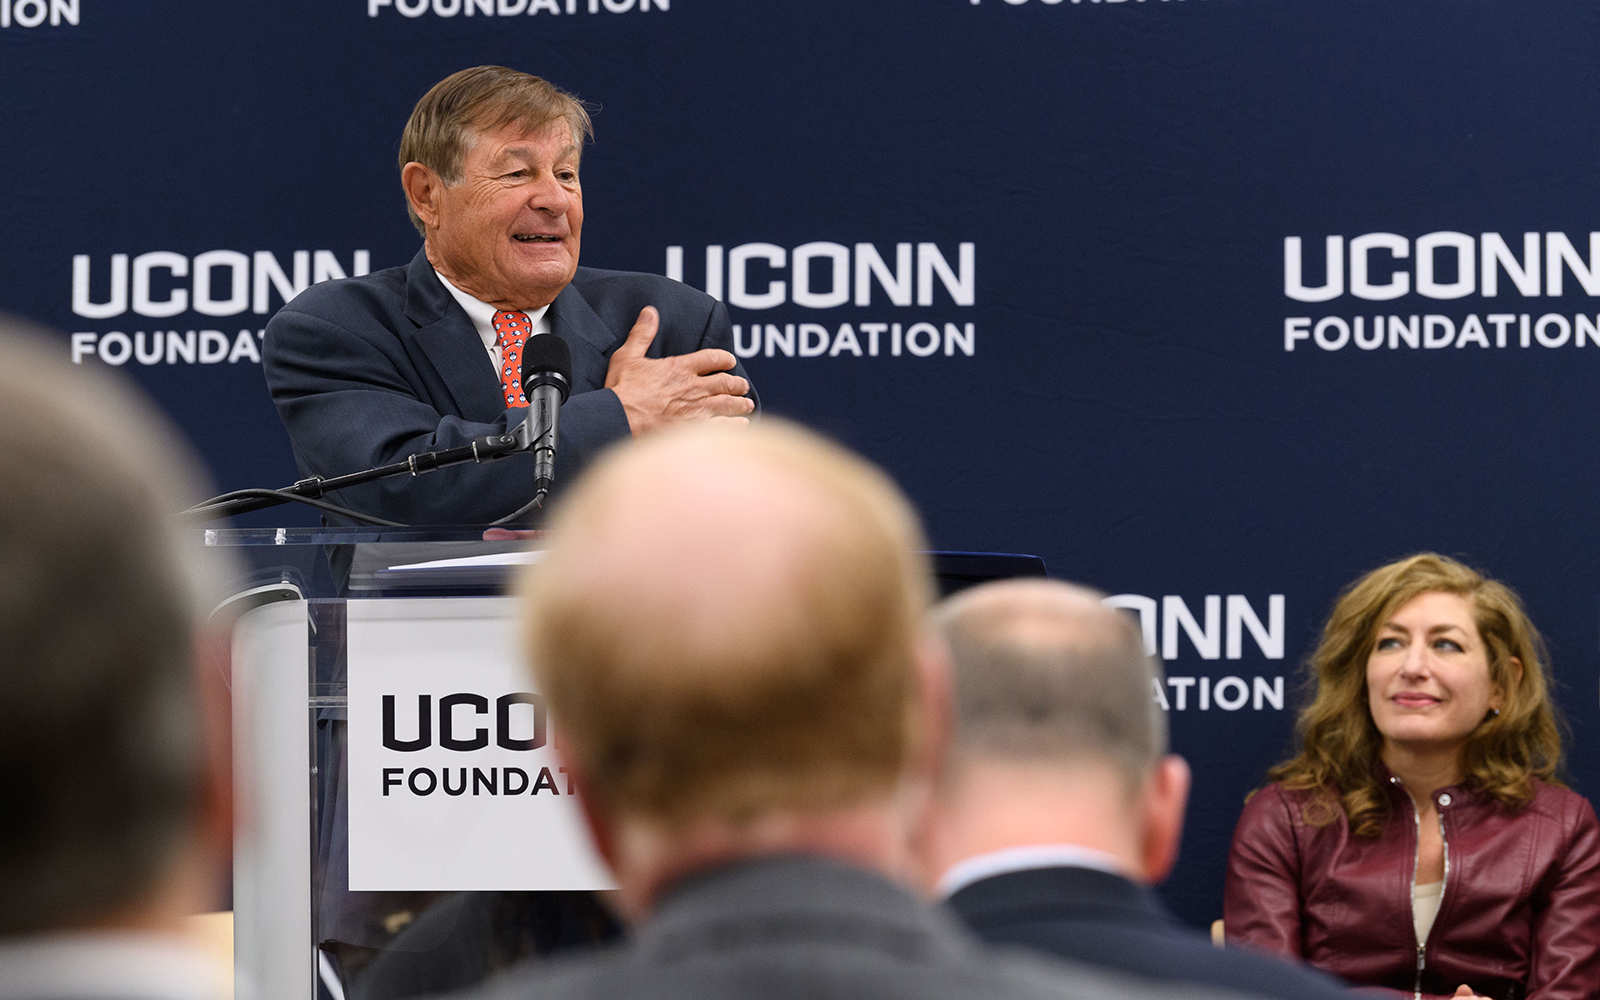 Peter J. Werth speaks at an event to announce his $22.5 million commitment to the University on Dec. 4, 2017.